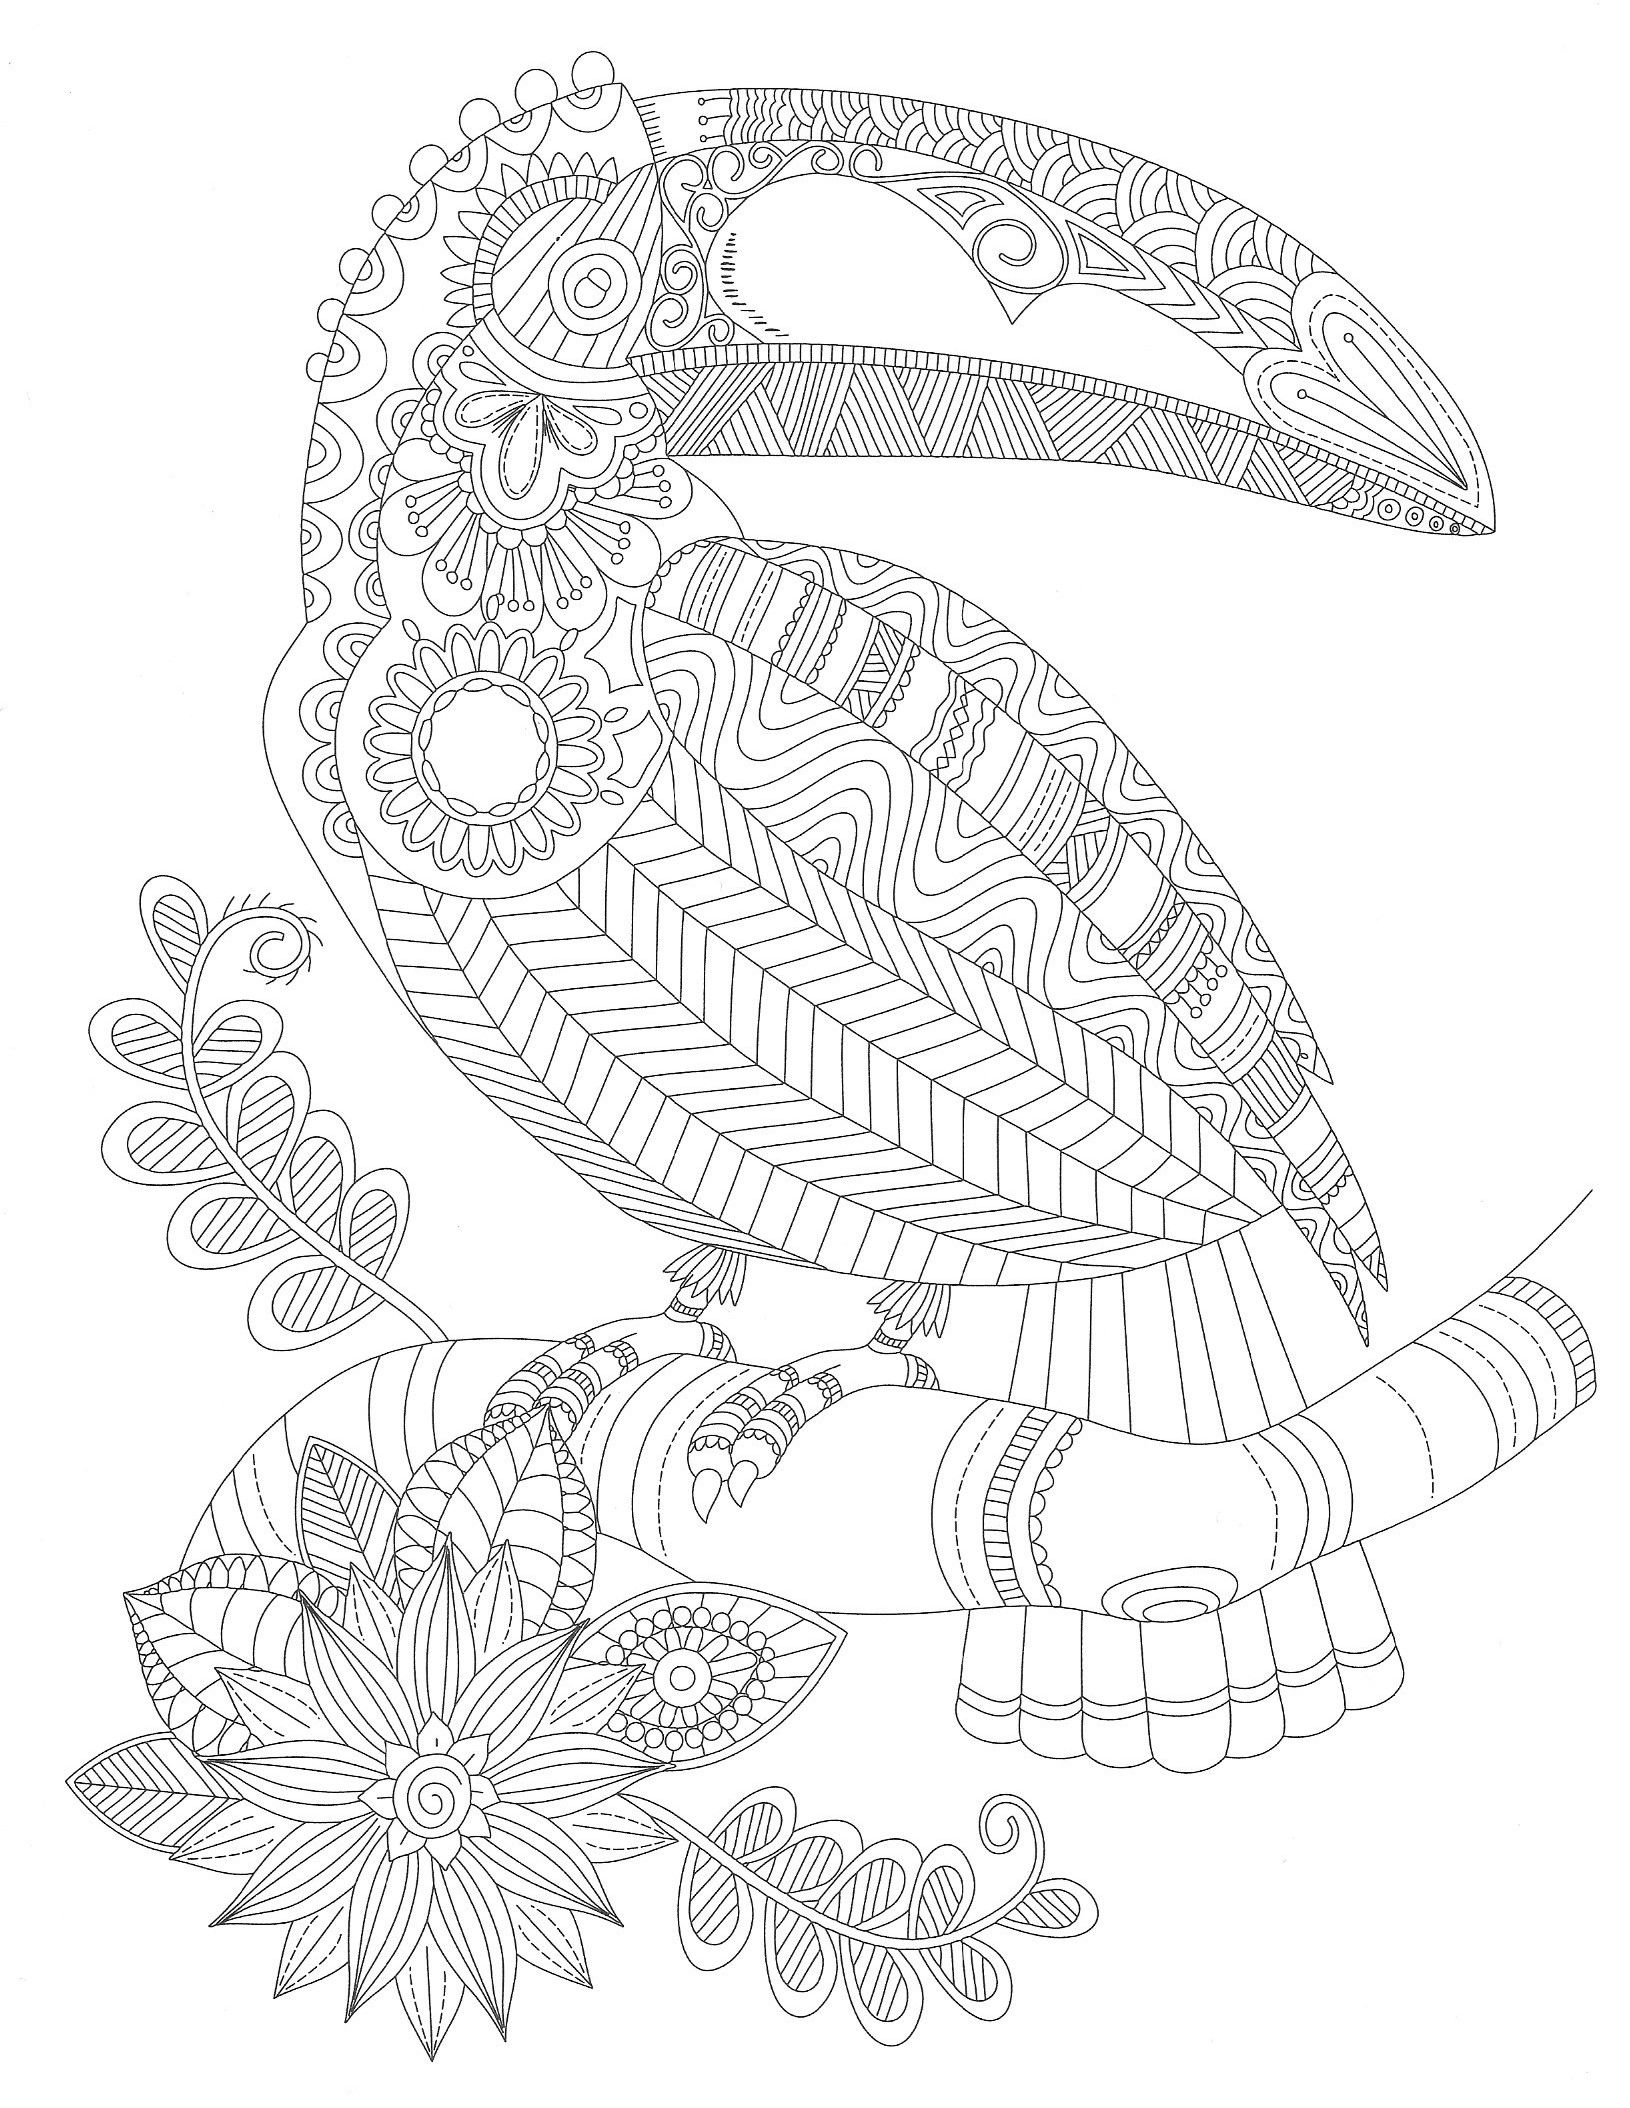 tukan dschungel | PATTERNS , COLORING PAGES AND MORE... | Pinterest ...